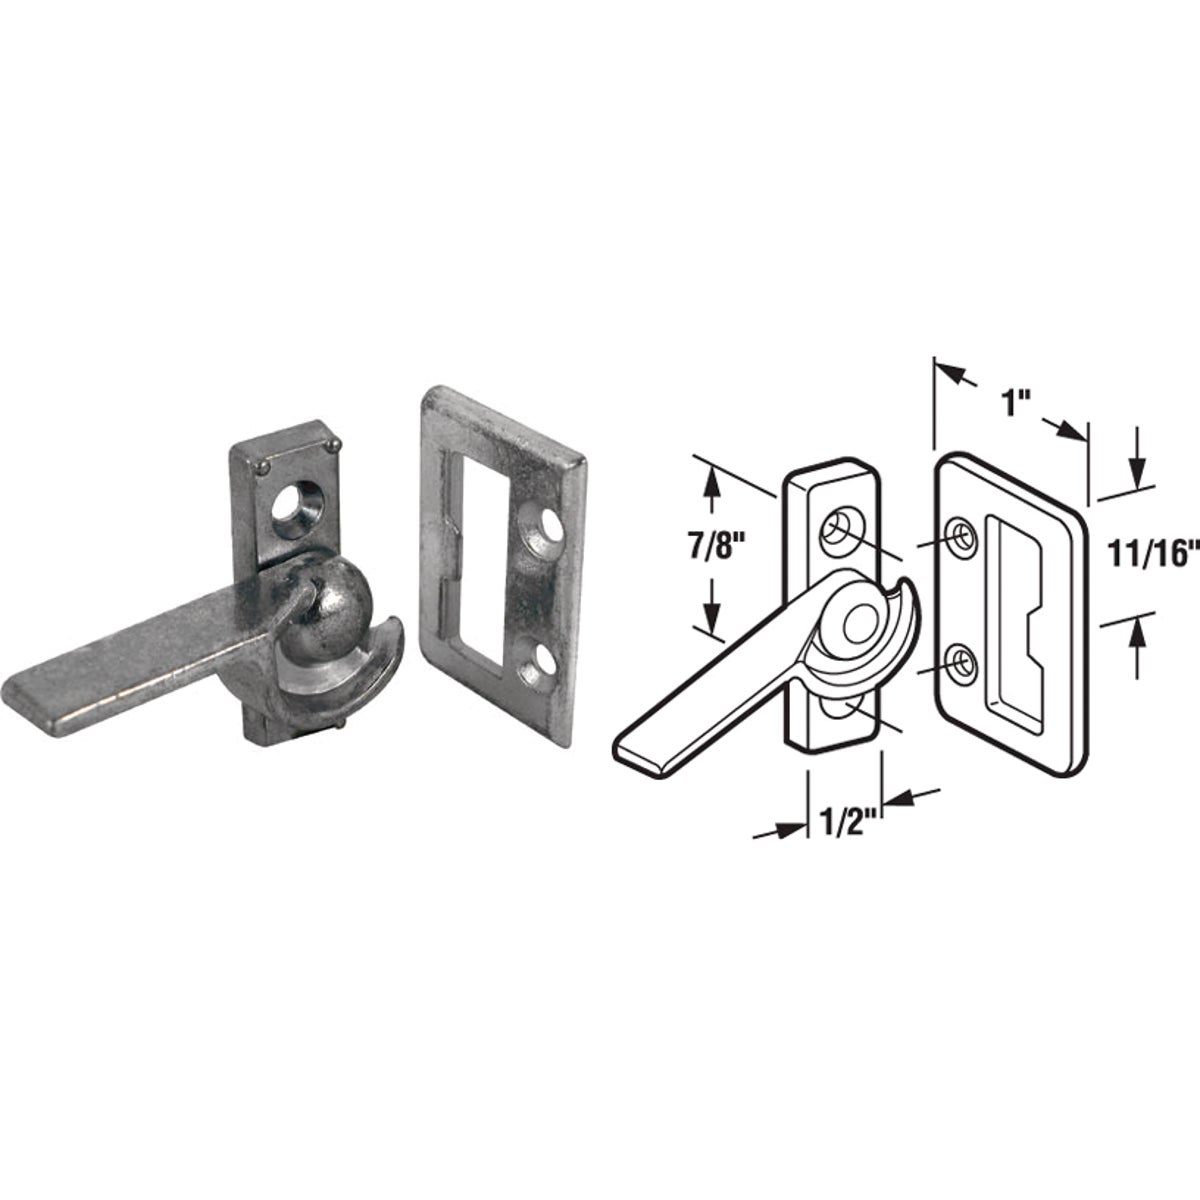 RIGHT SLD WINDOW LATCH